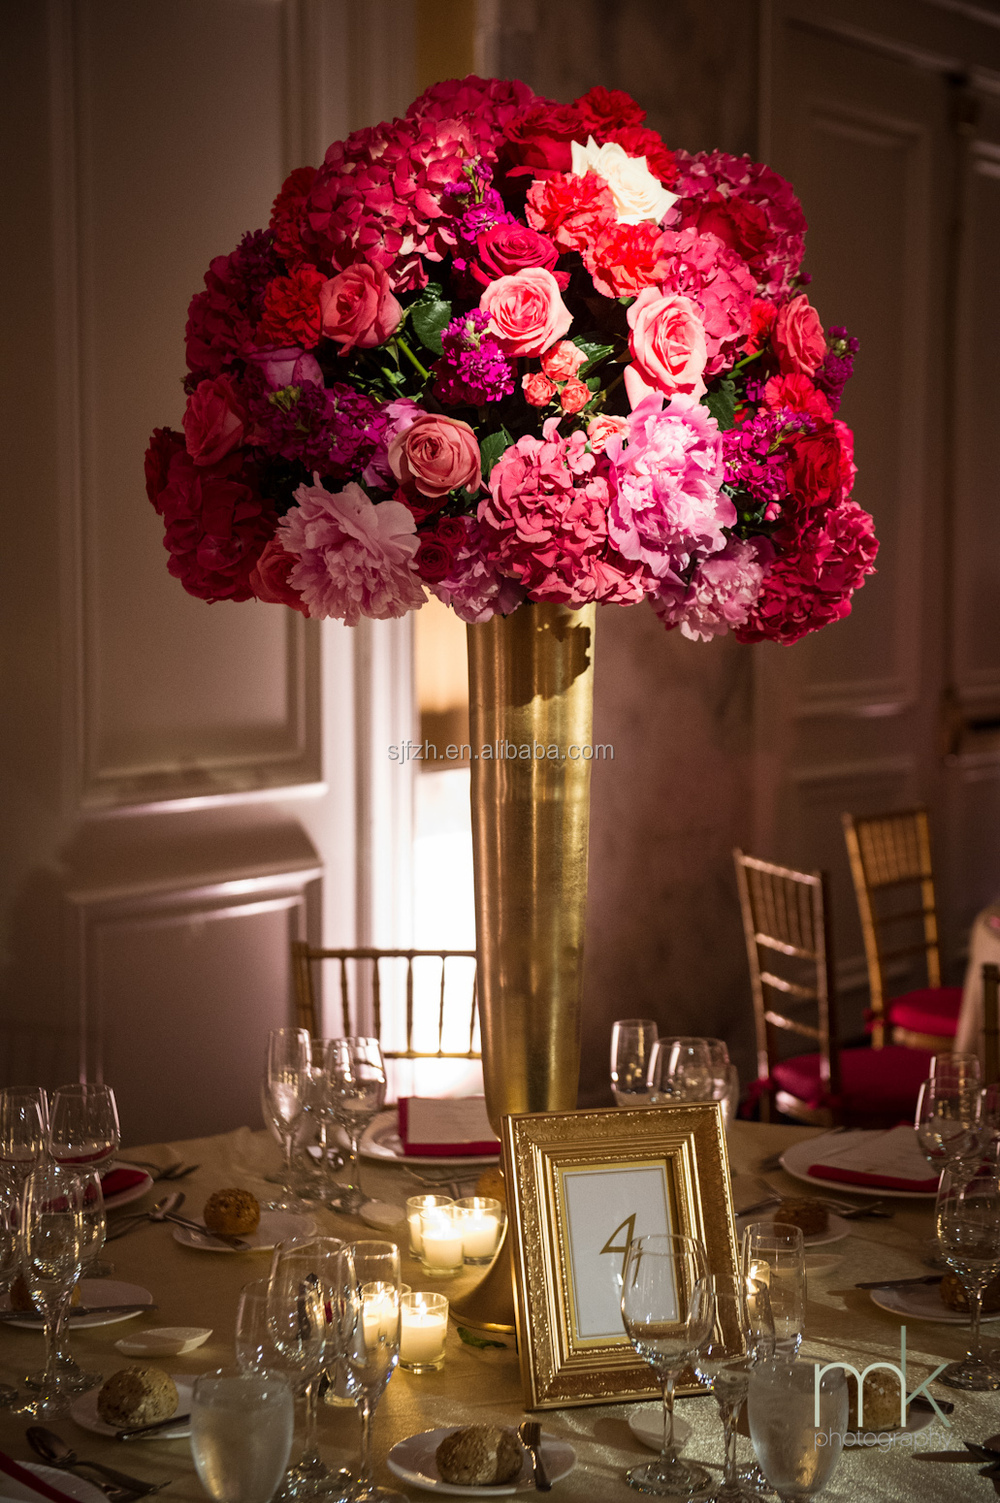 Centerpieces No Vase : Good quality tall vase for wedding table centerpiece